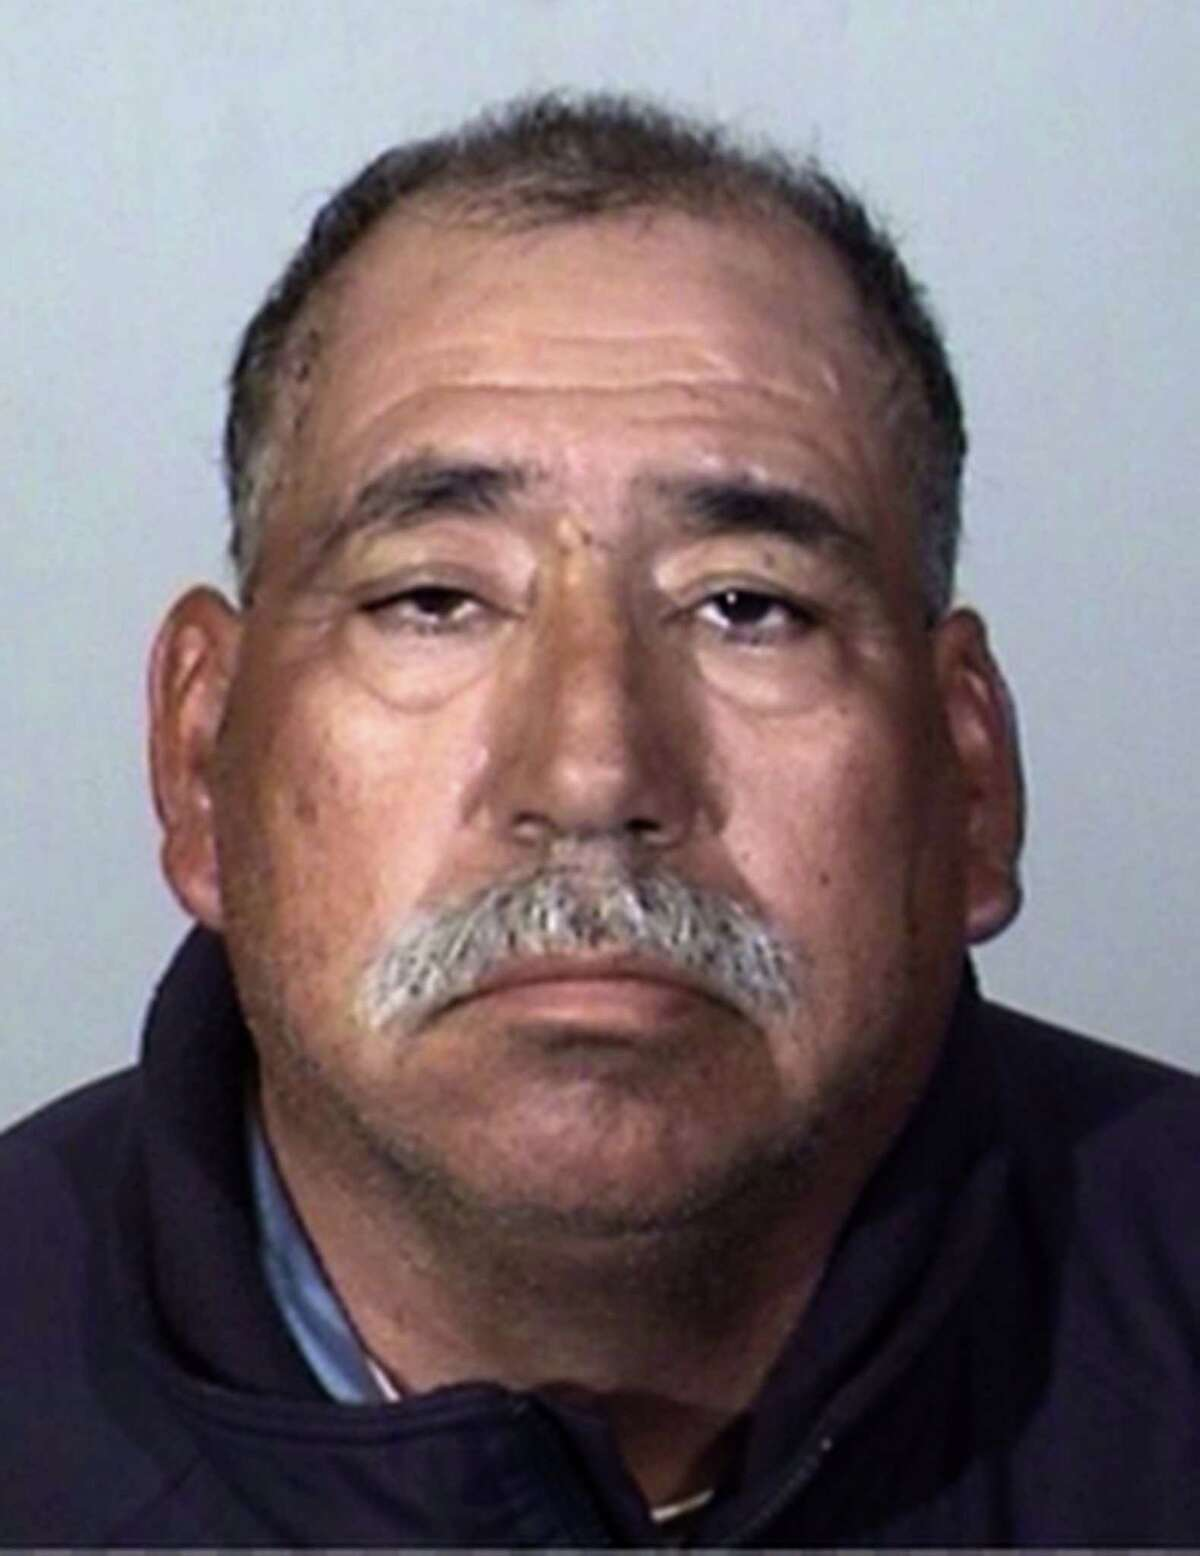 This Tuesday, Feb. 24, 2015 booking photo provided by the Oxnard Police Department shows Jose Alejandro Sanchez-Ramirez, 54, of Yuma, Arizona, who was the driver of a pickup truck that a Southern California commuter train smashed into on Tuesday, Feb. 24, 2015. He was found about a half-mile away from the crash 45 minutes later, said Jason Benites, an assistant chief of the Oxnard Police Department. Sanchez-Ramirez was briefly hospitalized before being arrested Tuesday afternoon on suspicion of felony hit-and-run. (AP Photo/Oxnard Police Department)